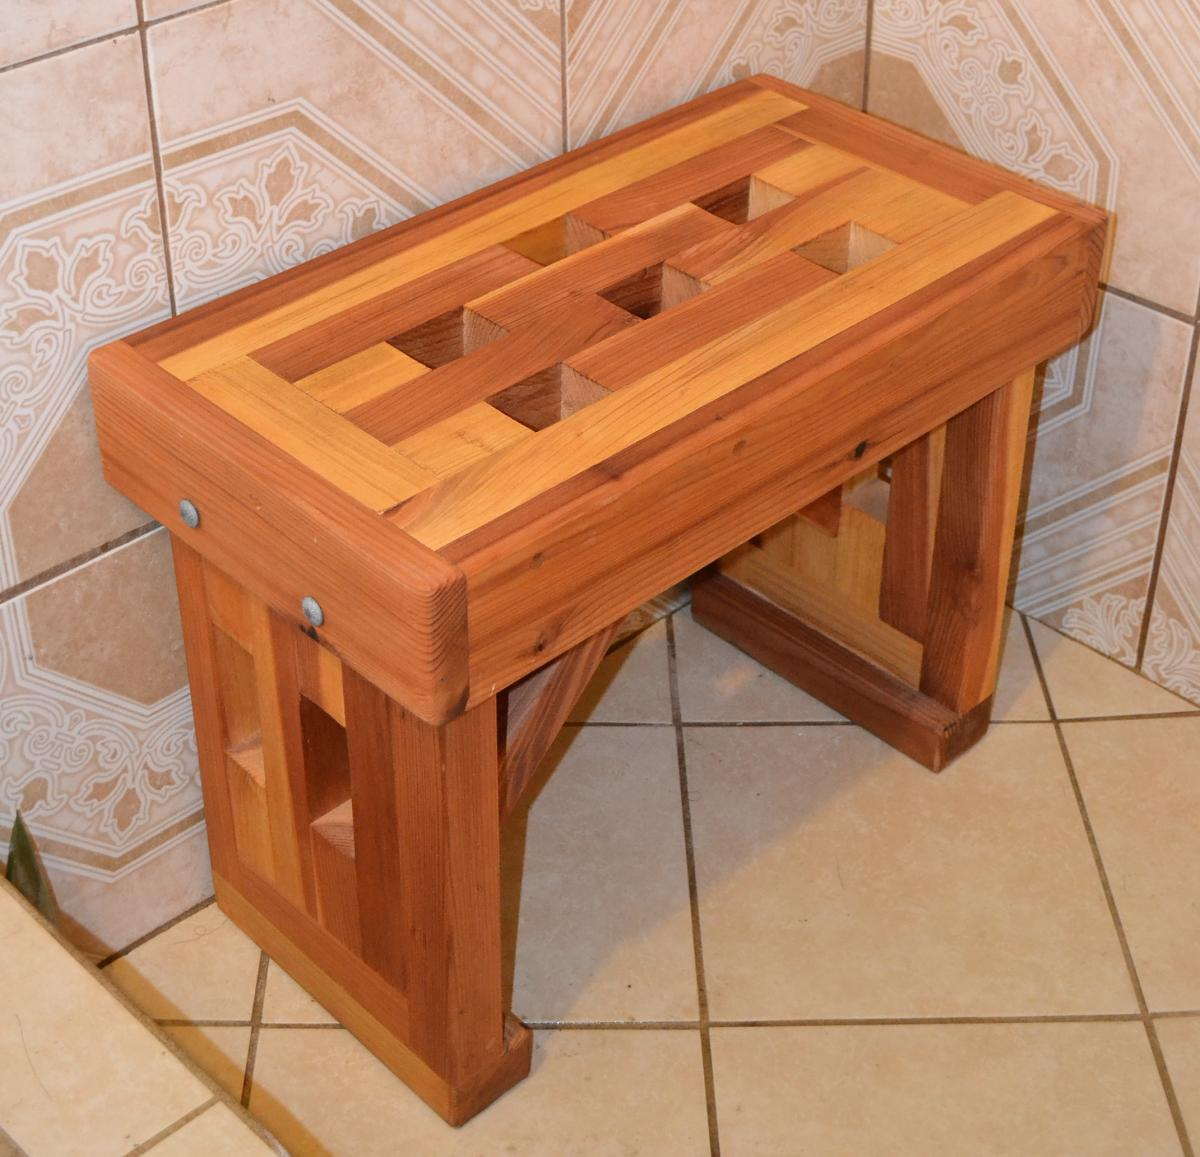 Lighthouse wooden shower bench